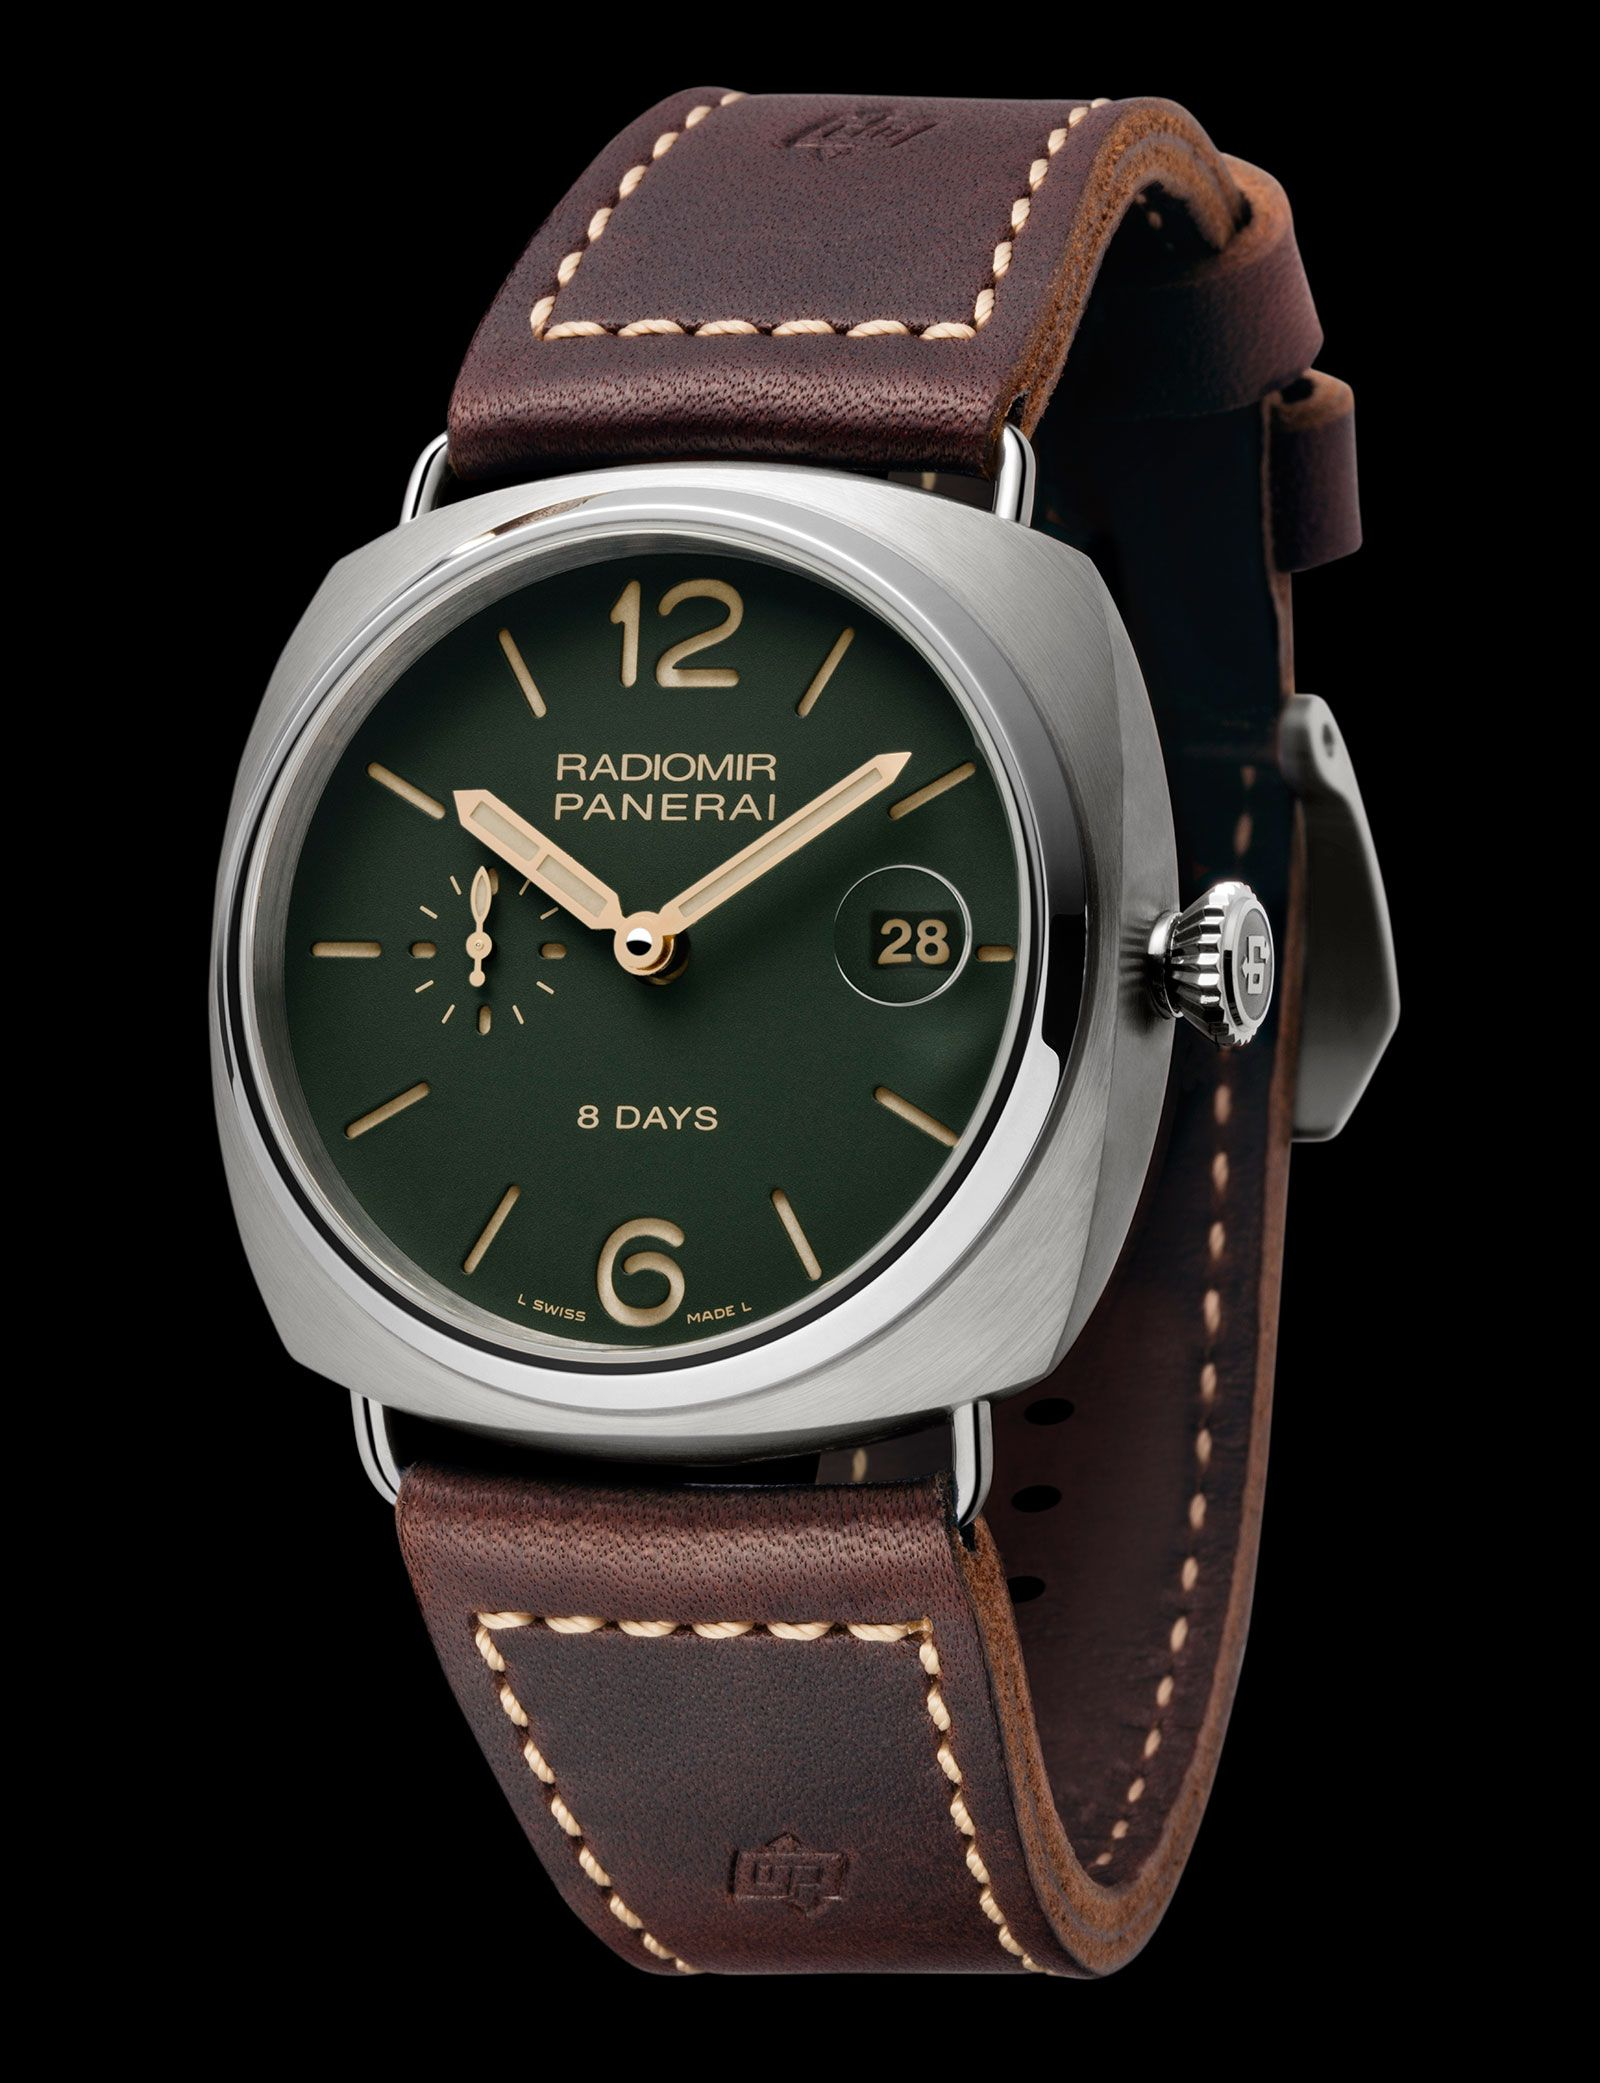 panerai hands the on dials of are watches hour replica luminant copy category numerals mm and there besides marks minute luminor fake arabic uk